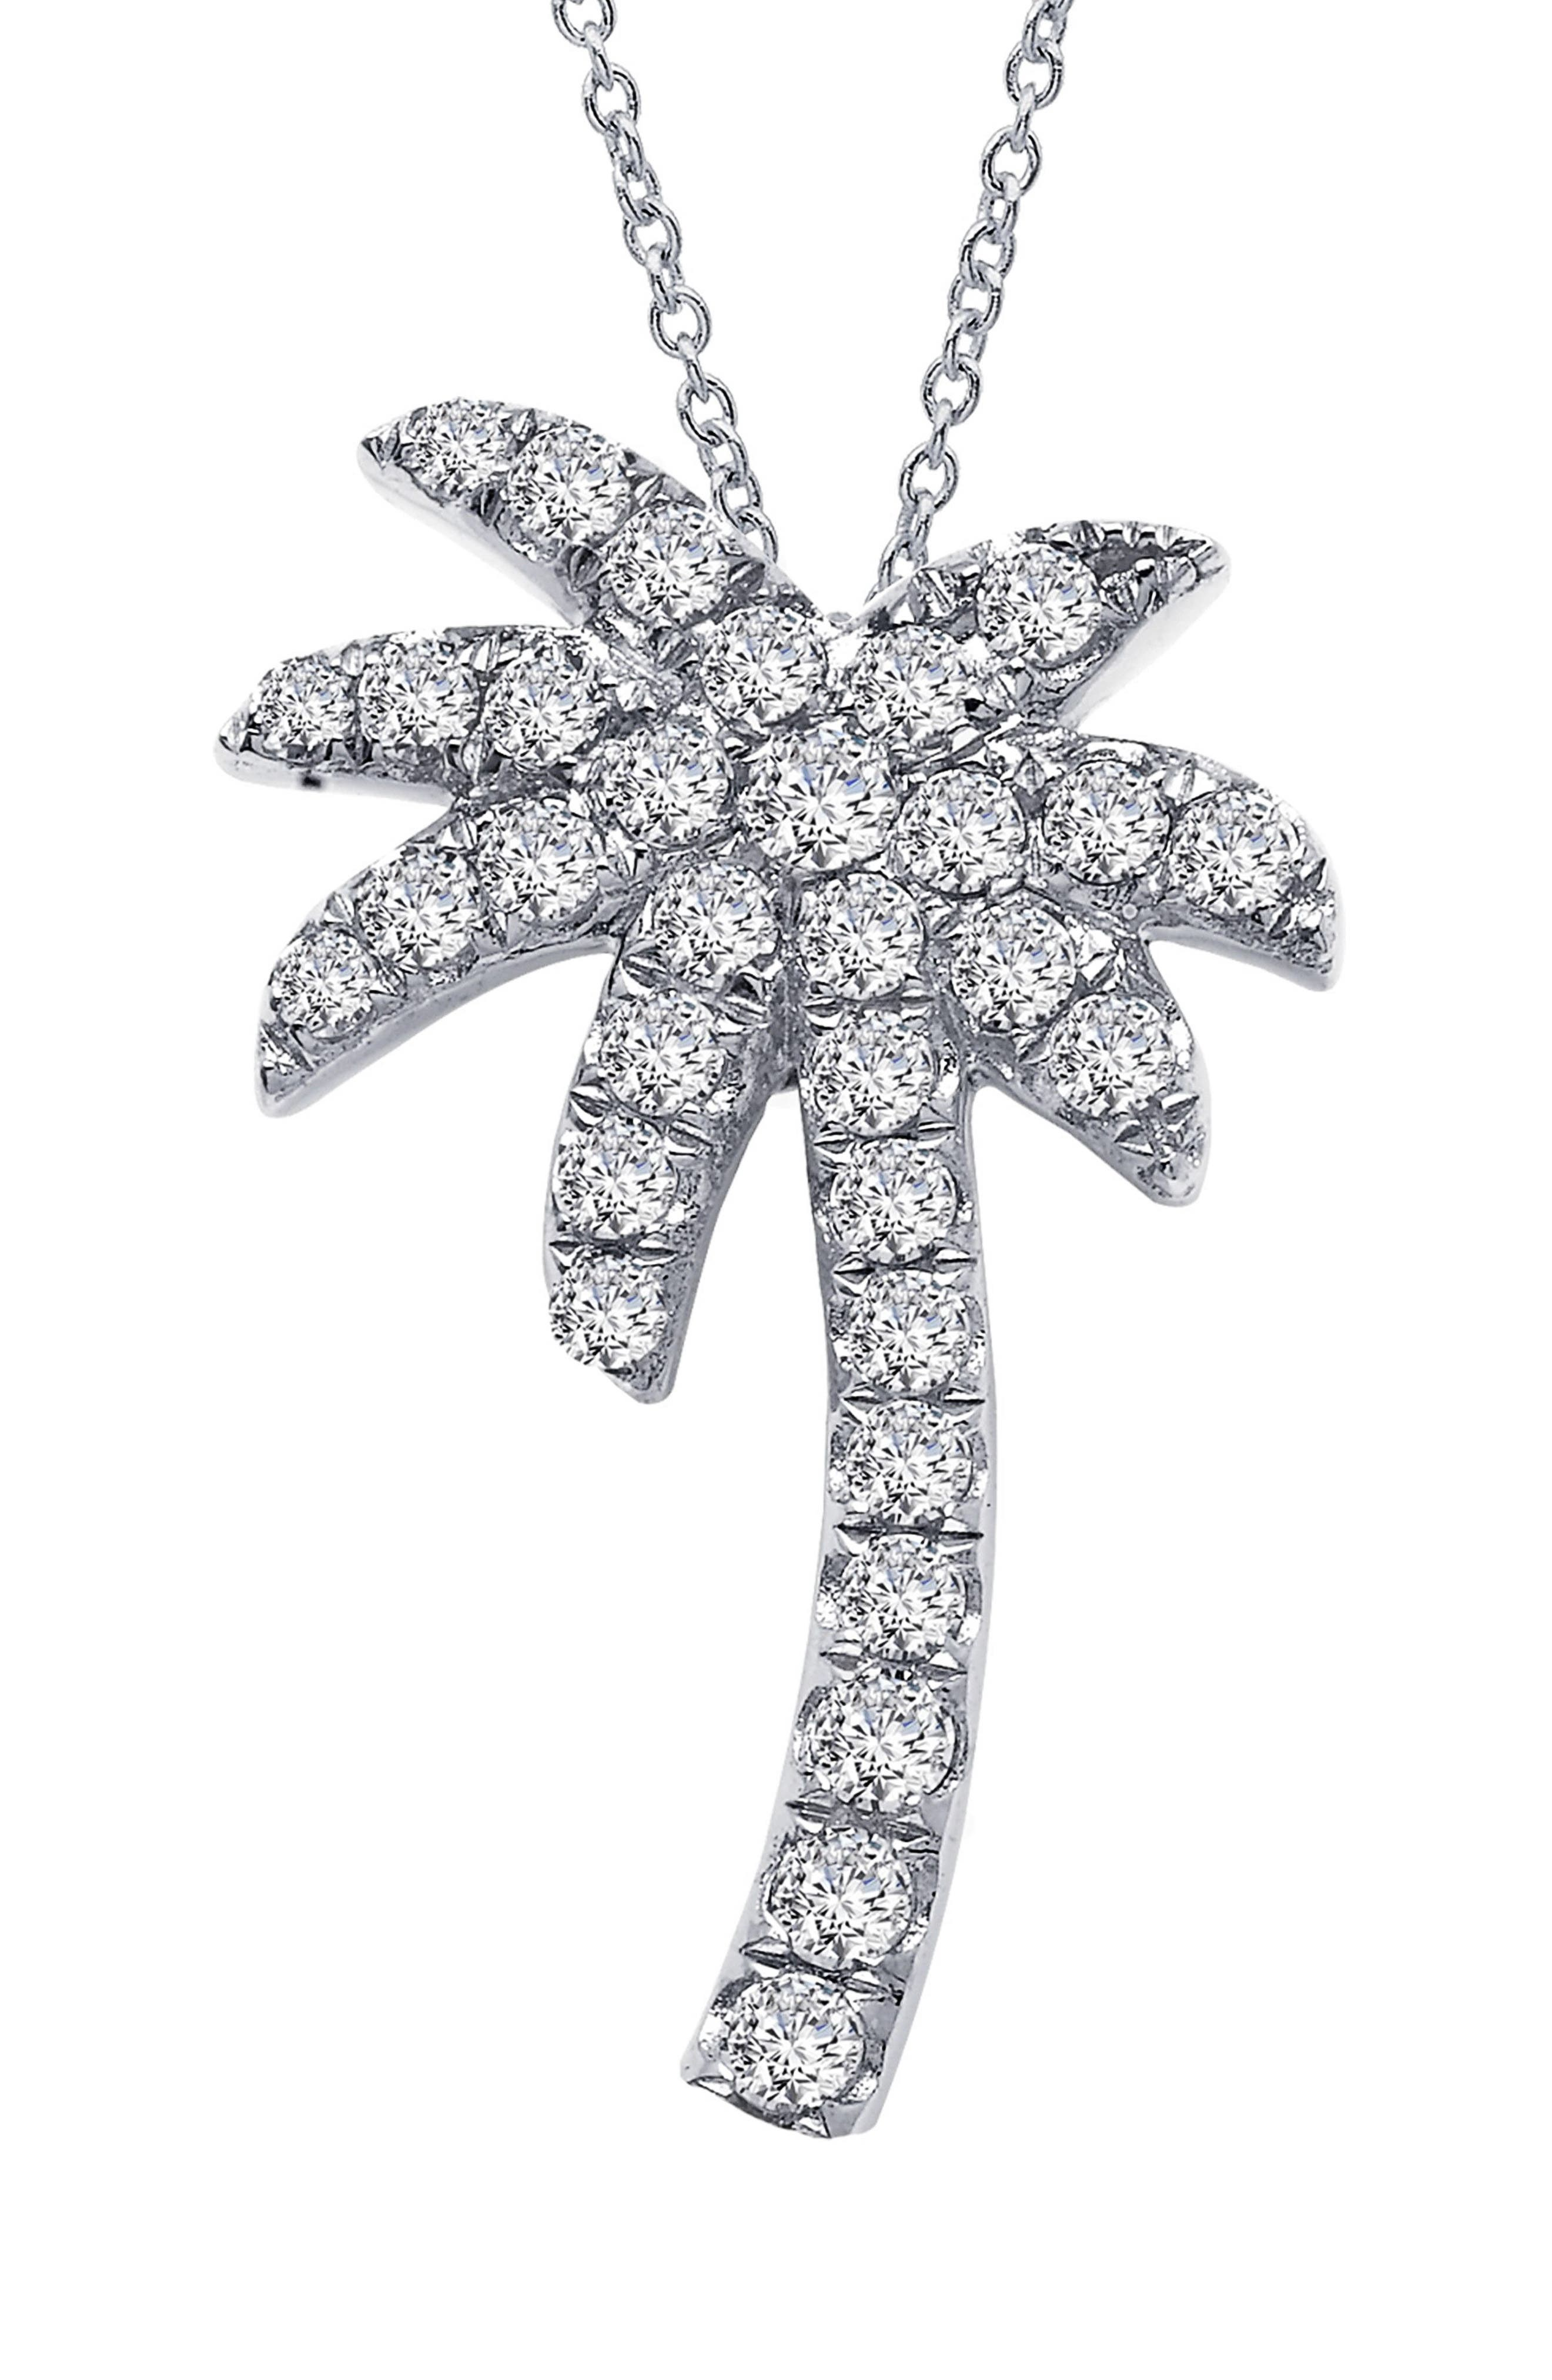 Palm Tree Simulated Diamond Pendant Necklace,                             Main thumbnail 1, color,                             SILVER